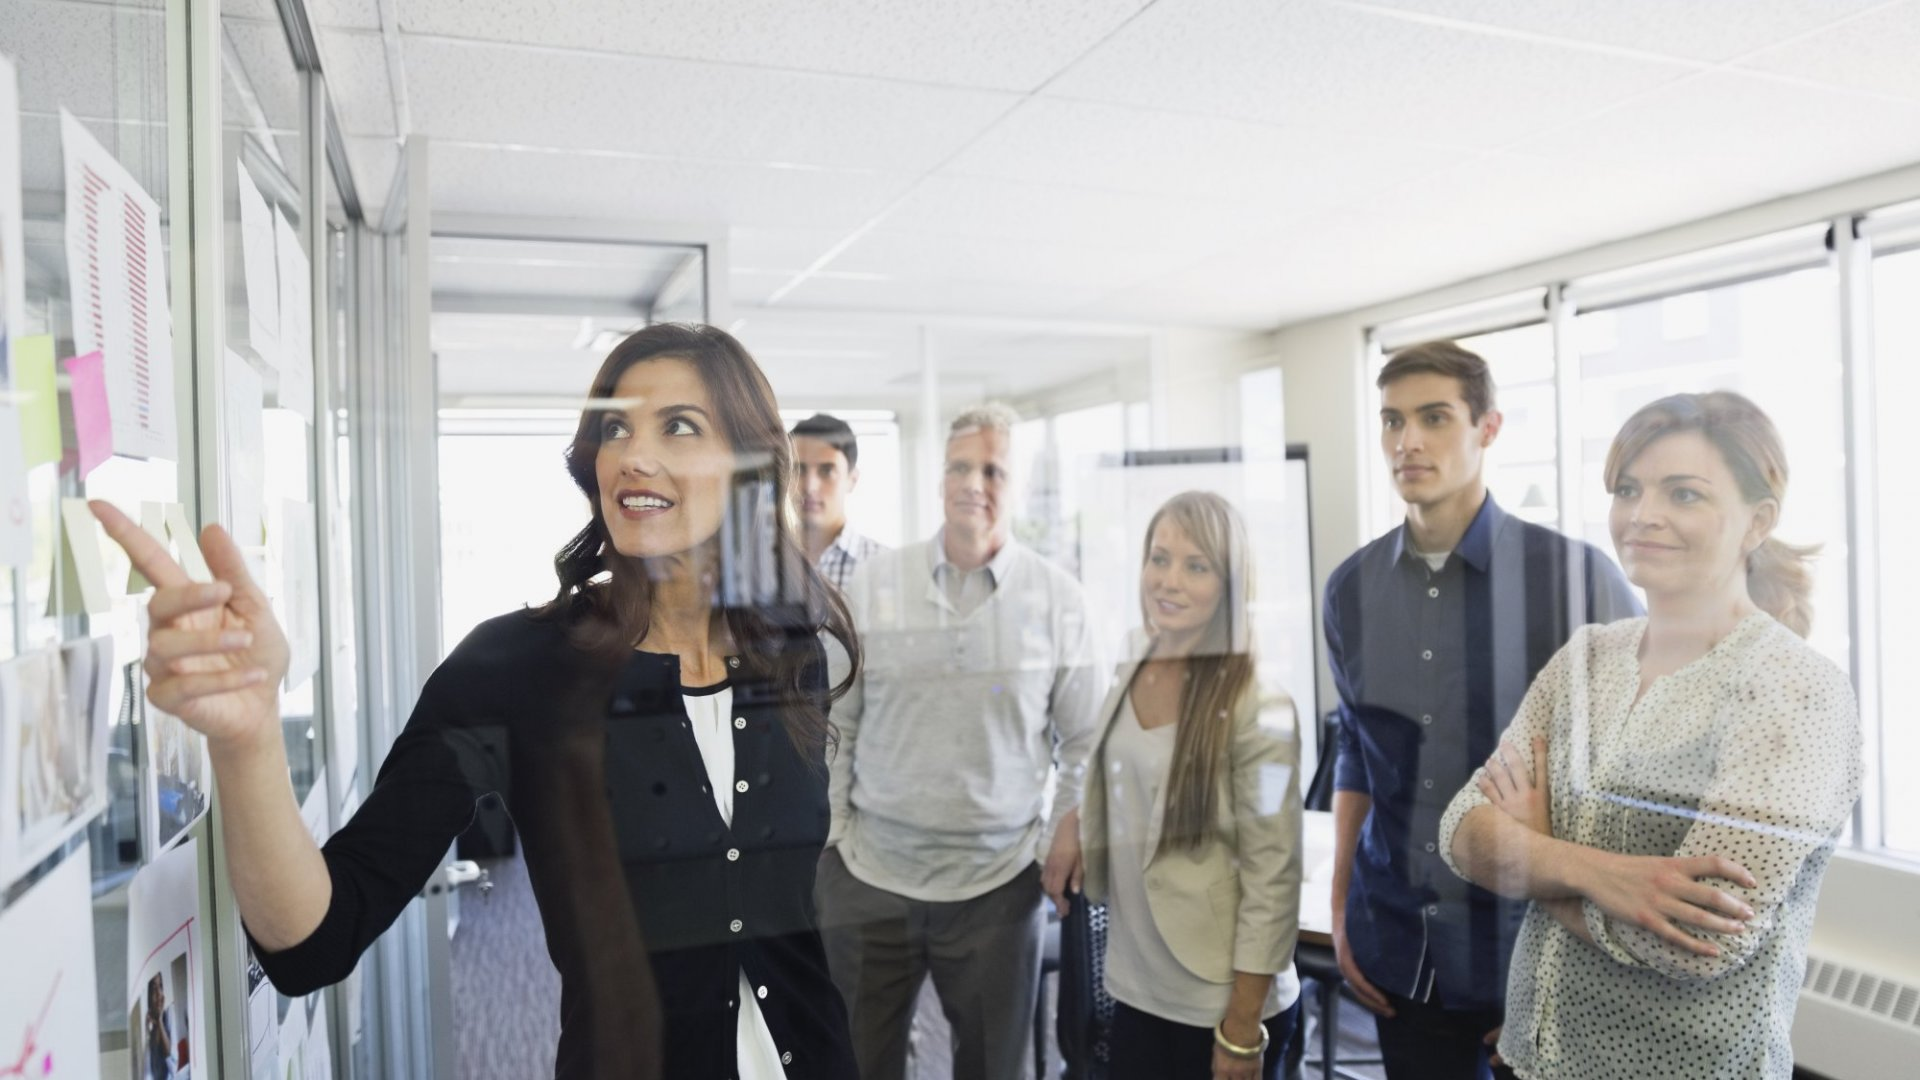 7 Horrible Ways to Lead a Team (and the 1 Mistake Everyone Makes)